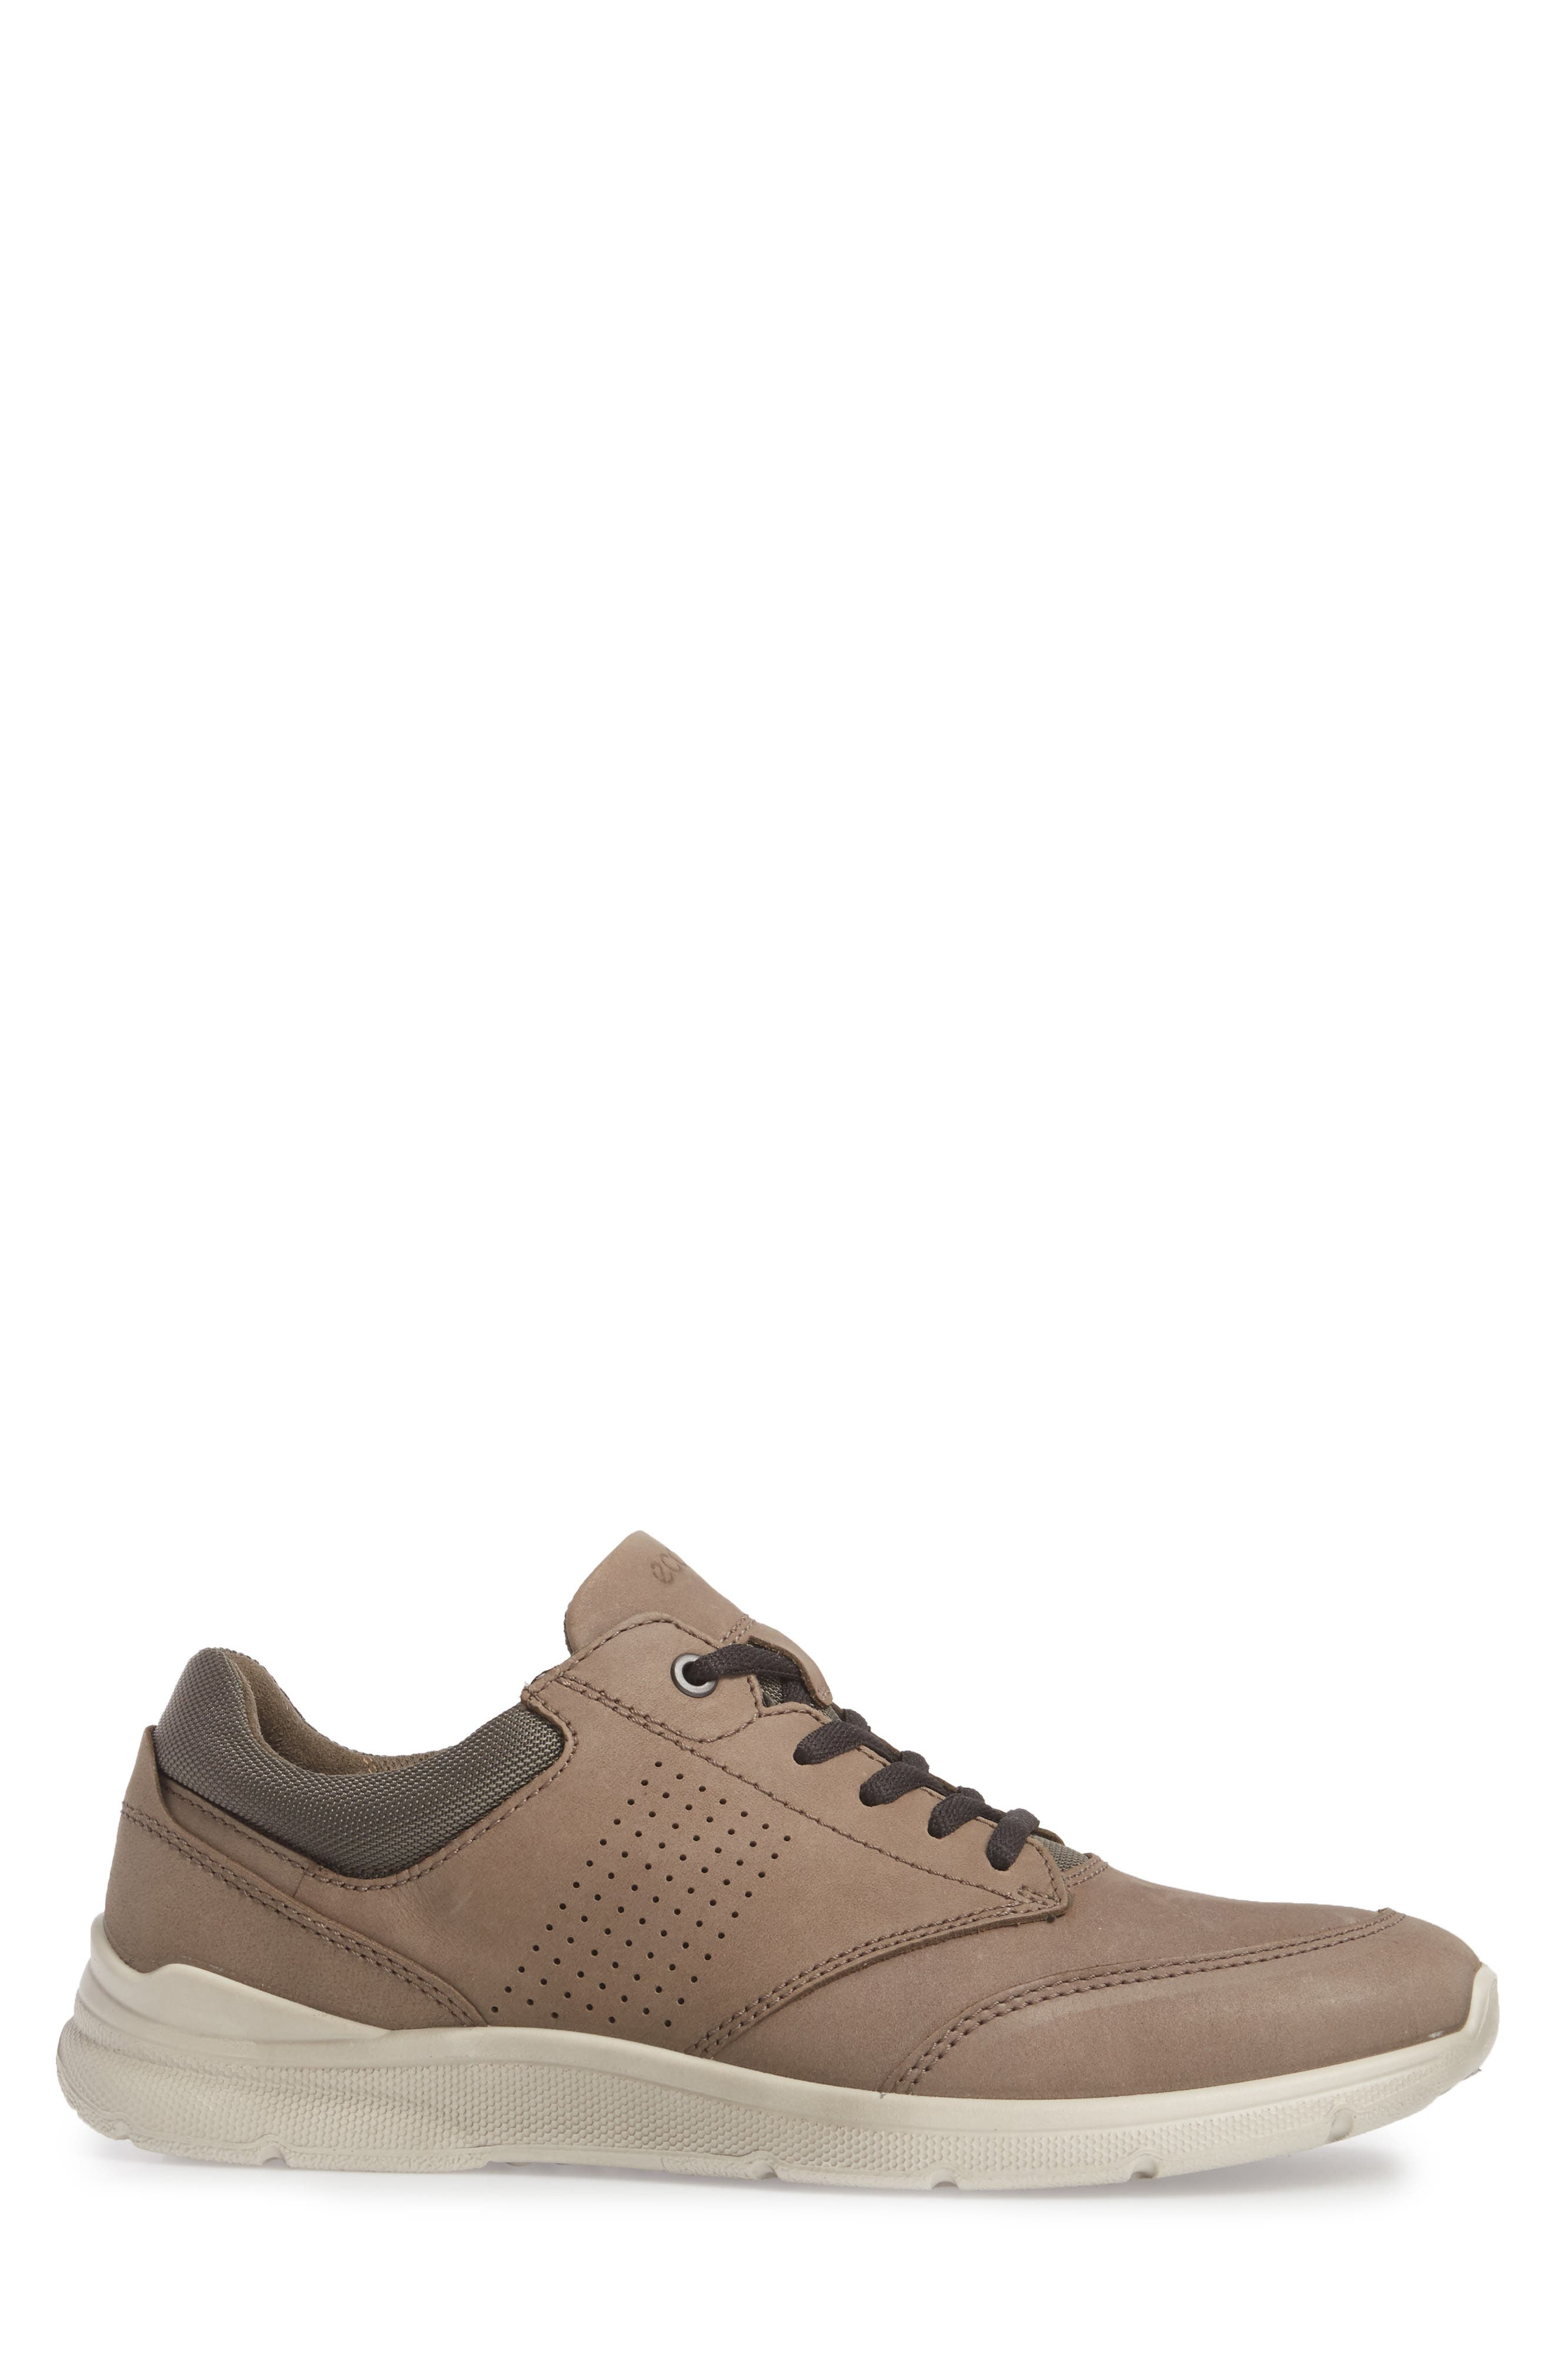 Irving Sneaker,                             Alternate thumbnail 3, color,                             Dark Clay Leather